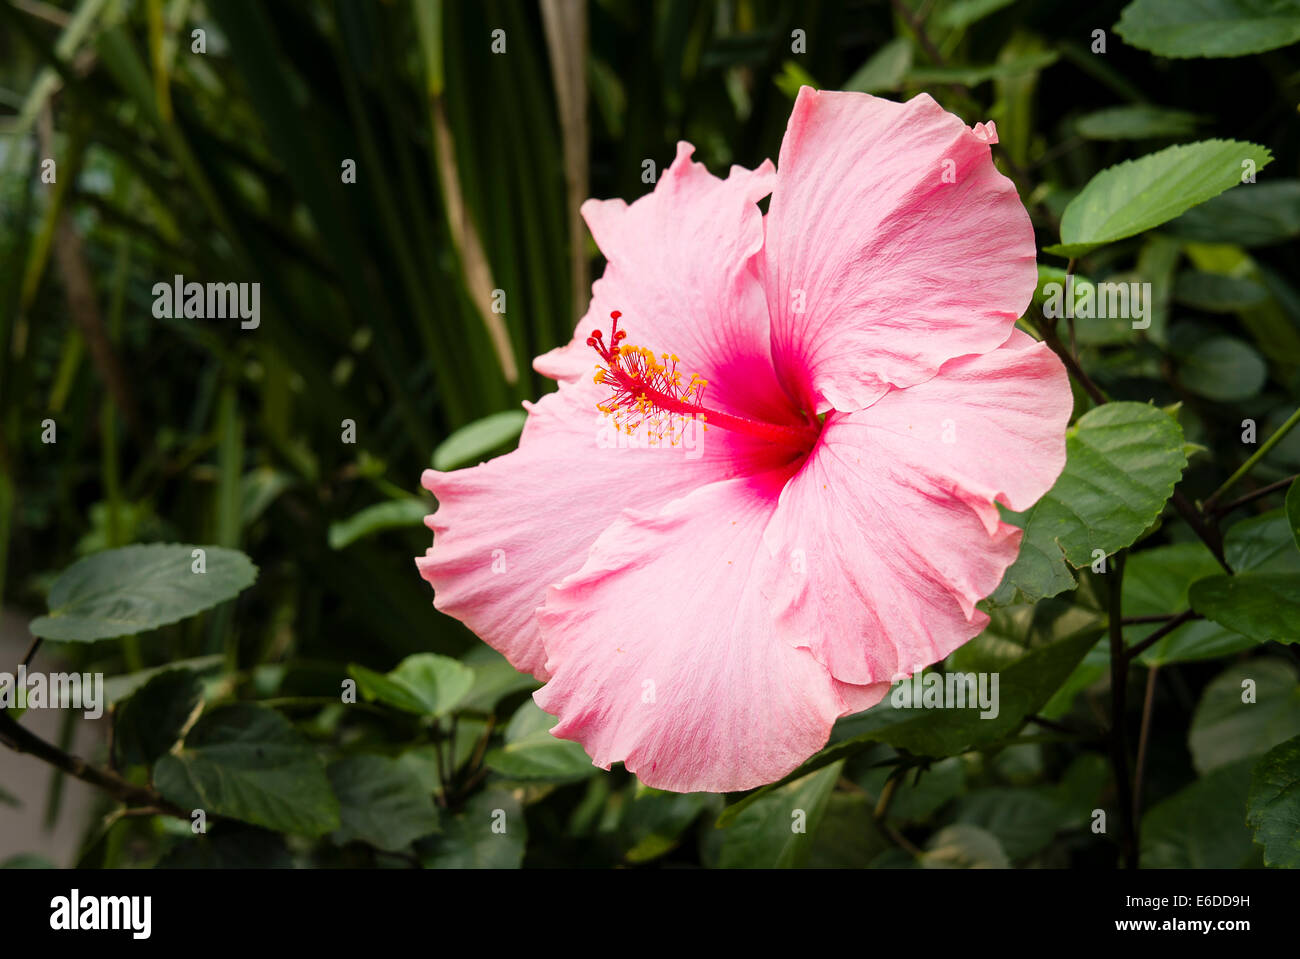 Pink hibiscus flower in the tropical biome at Eden Cornwall - Stock Image